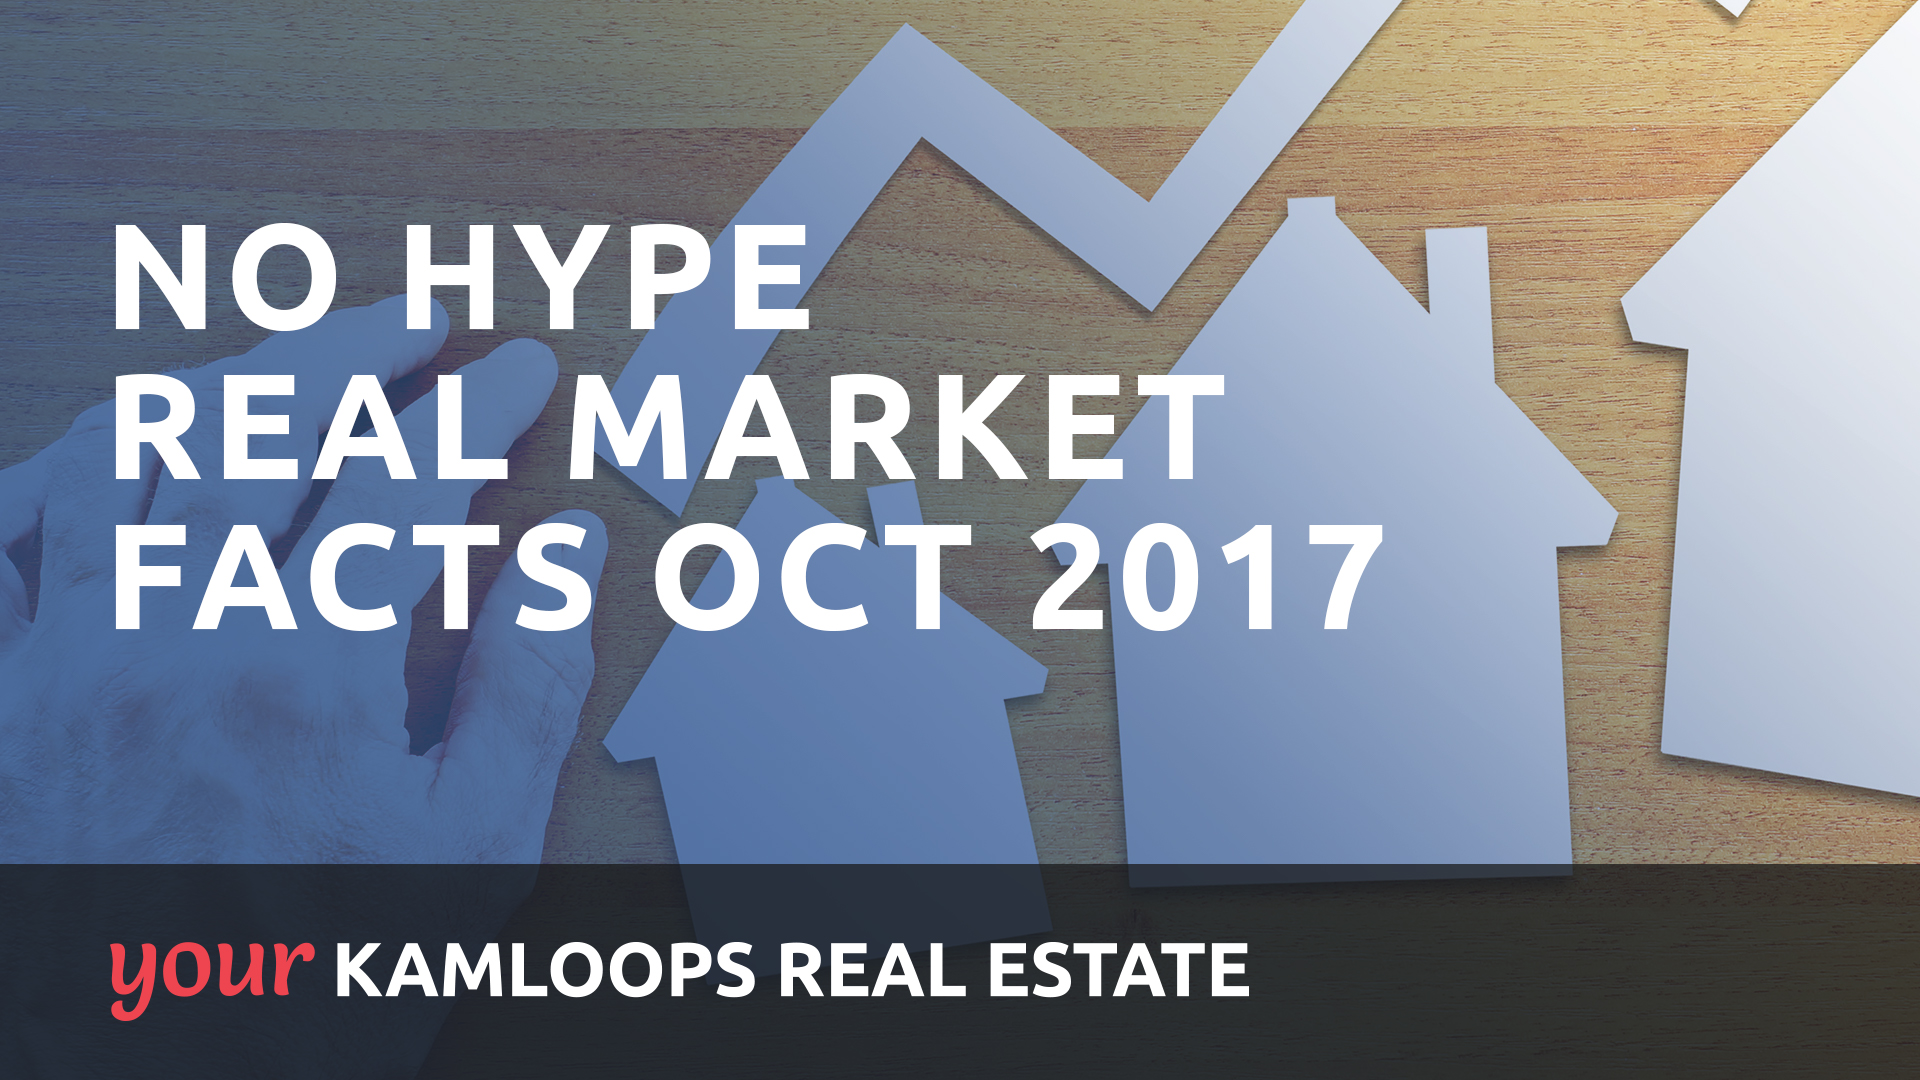 NO HYPE - real market facts Oct 2017